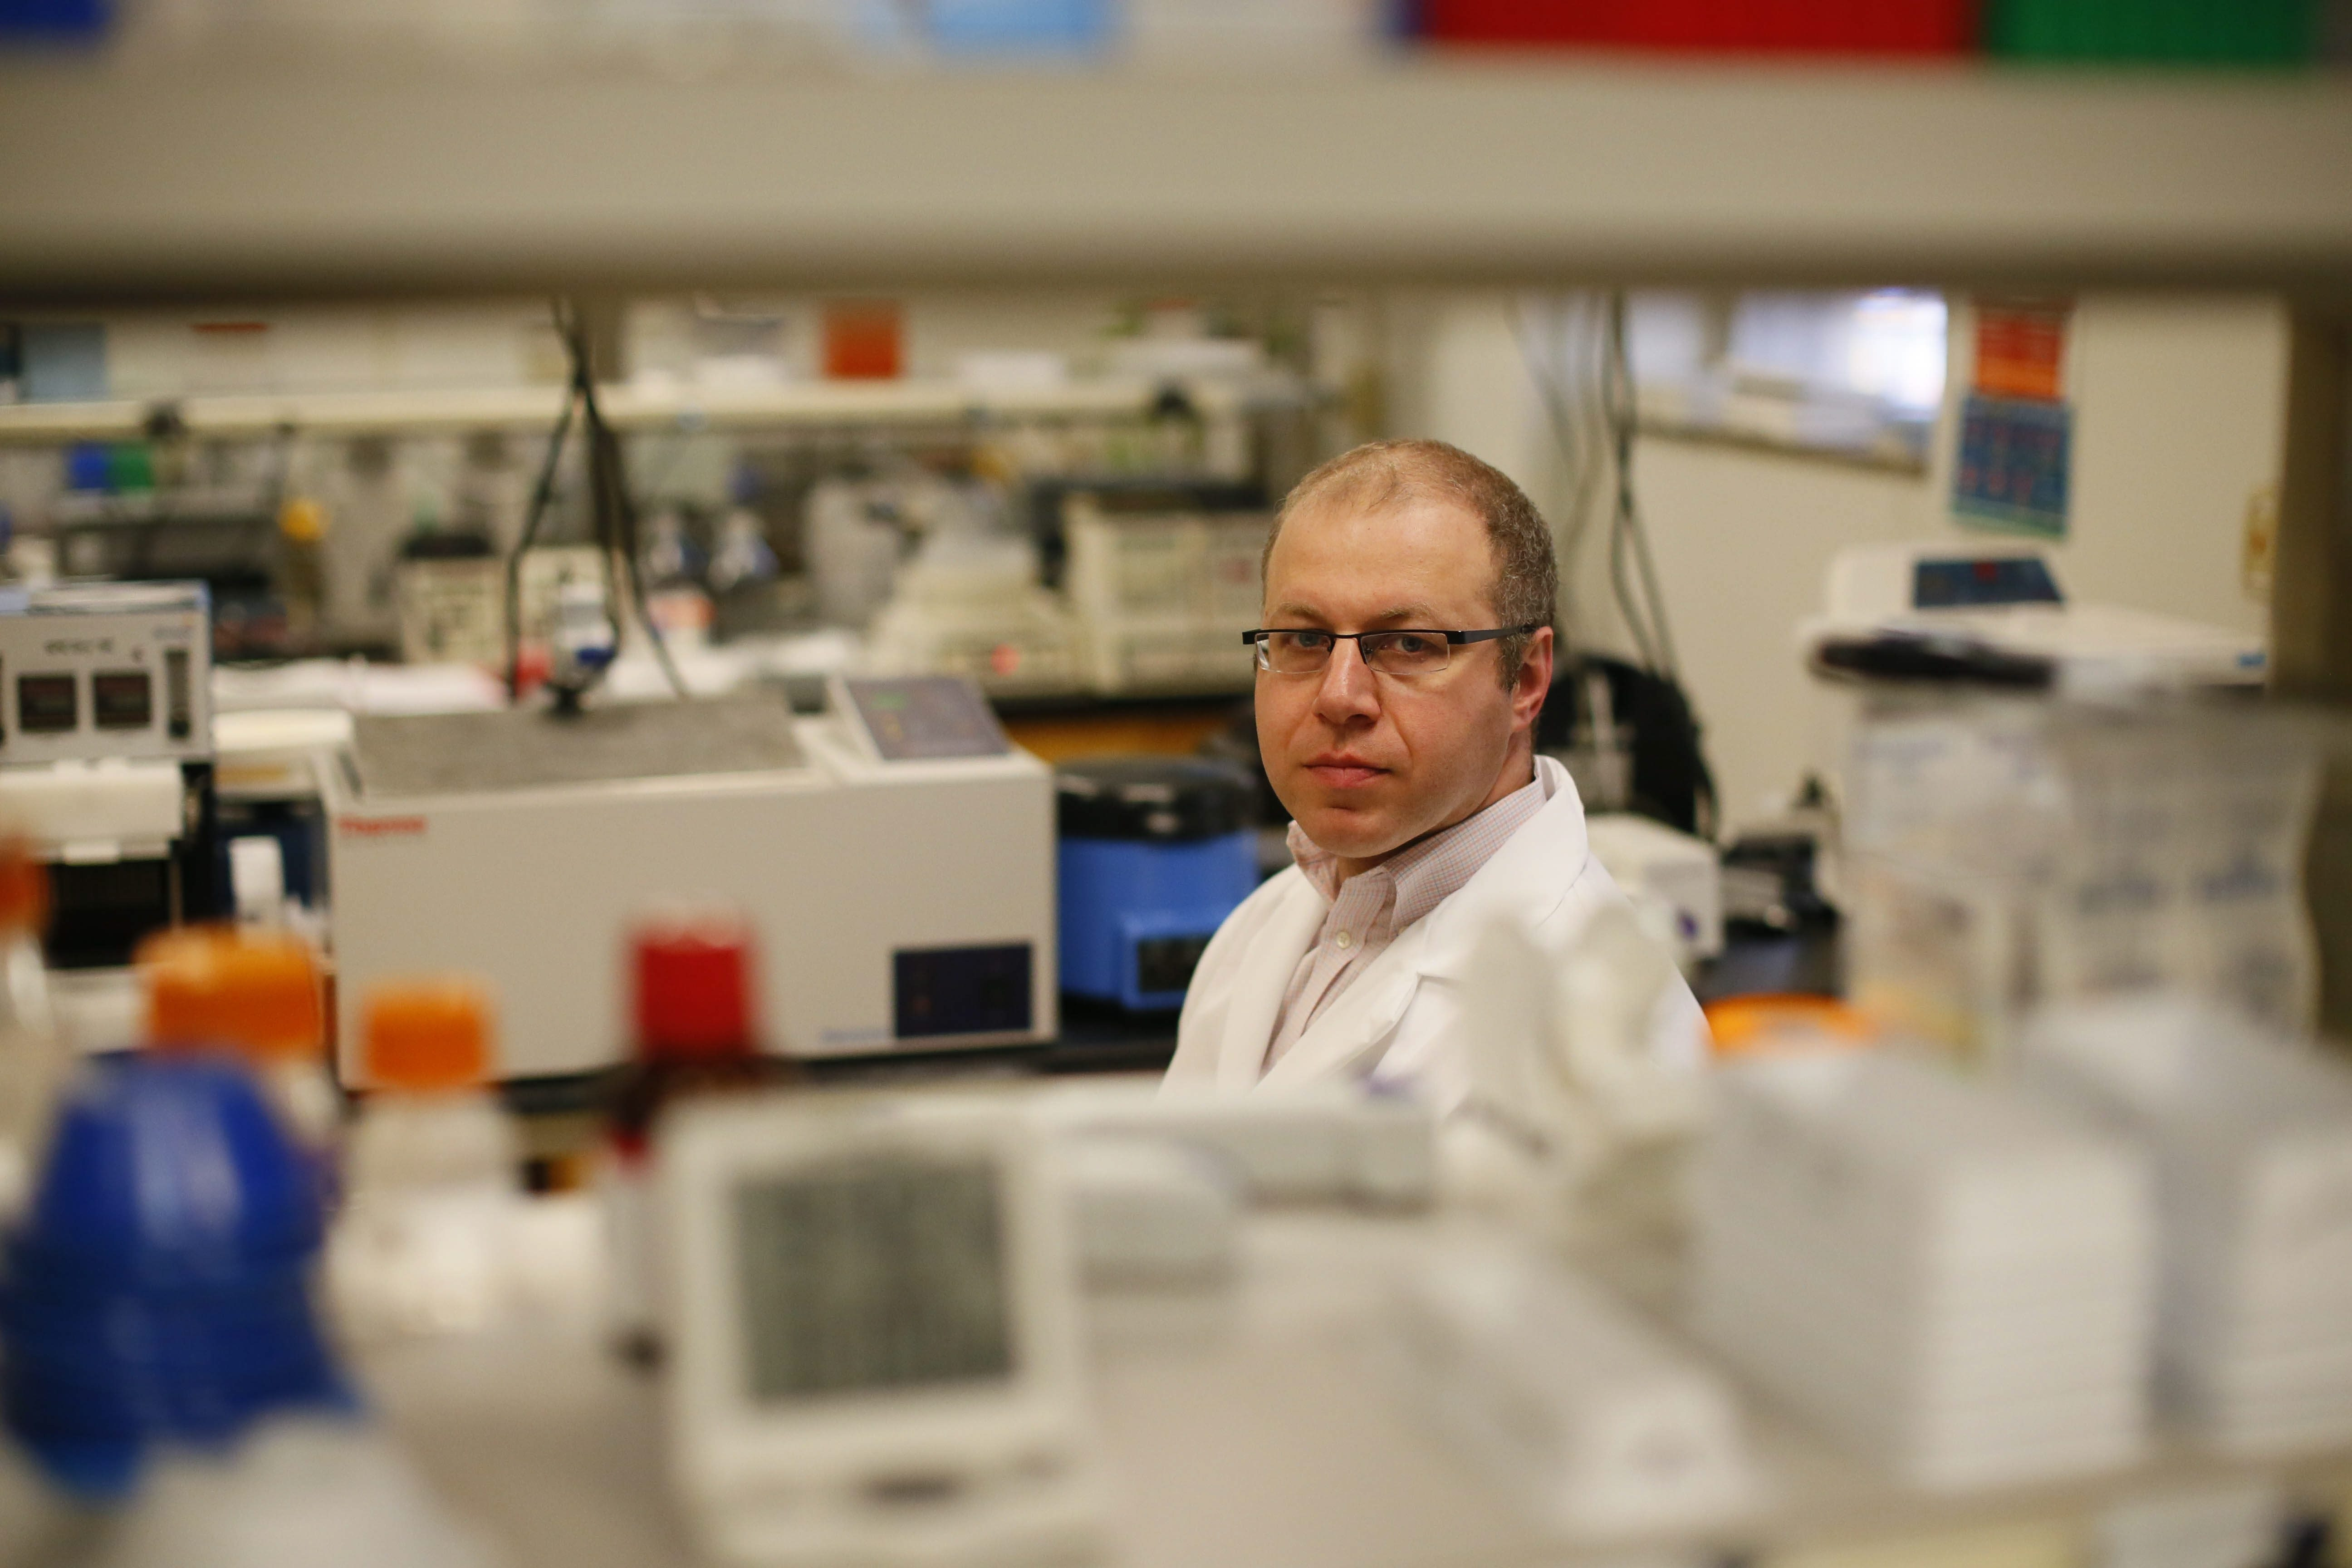 Yakov Kogan, CEO of Cleveland BioLabs, faces heightened challenges in developing Entolimod, now that Biomedical Advanced Research and Development Authority won't be source of funds.